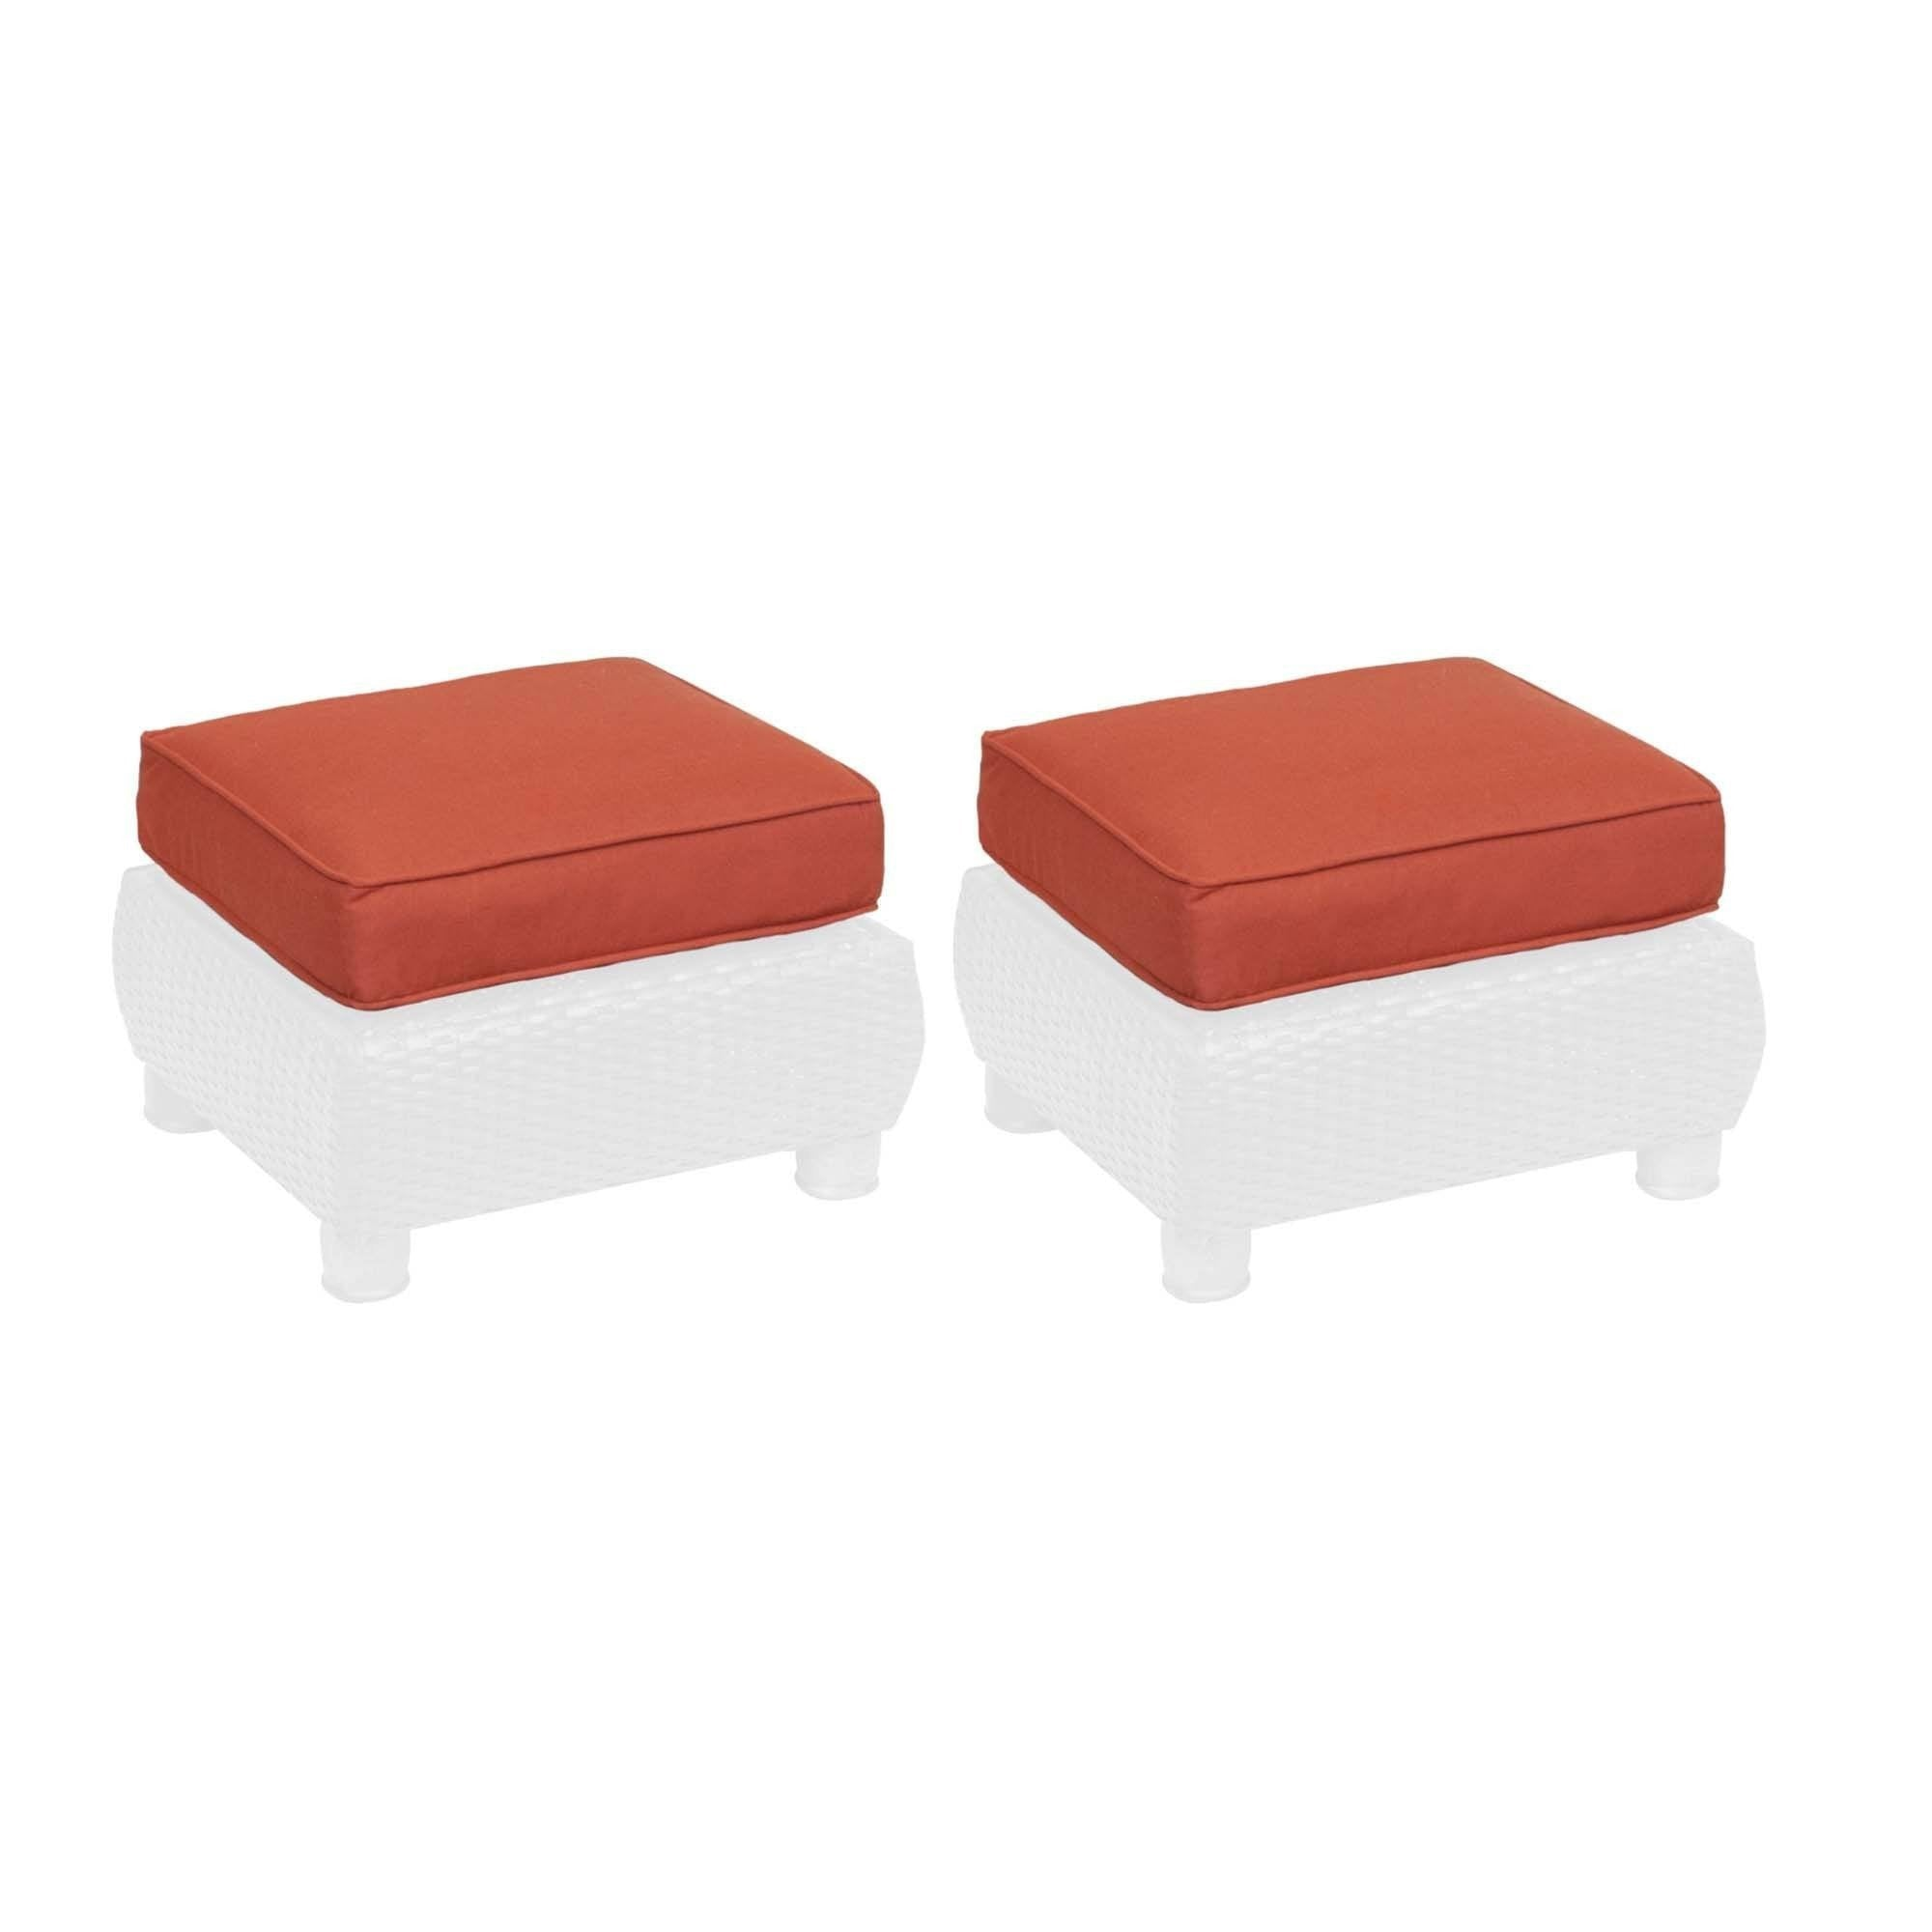 Breckenridge ottoman replacement cushion set of 2